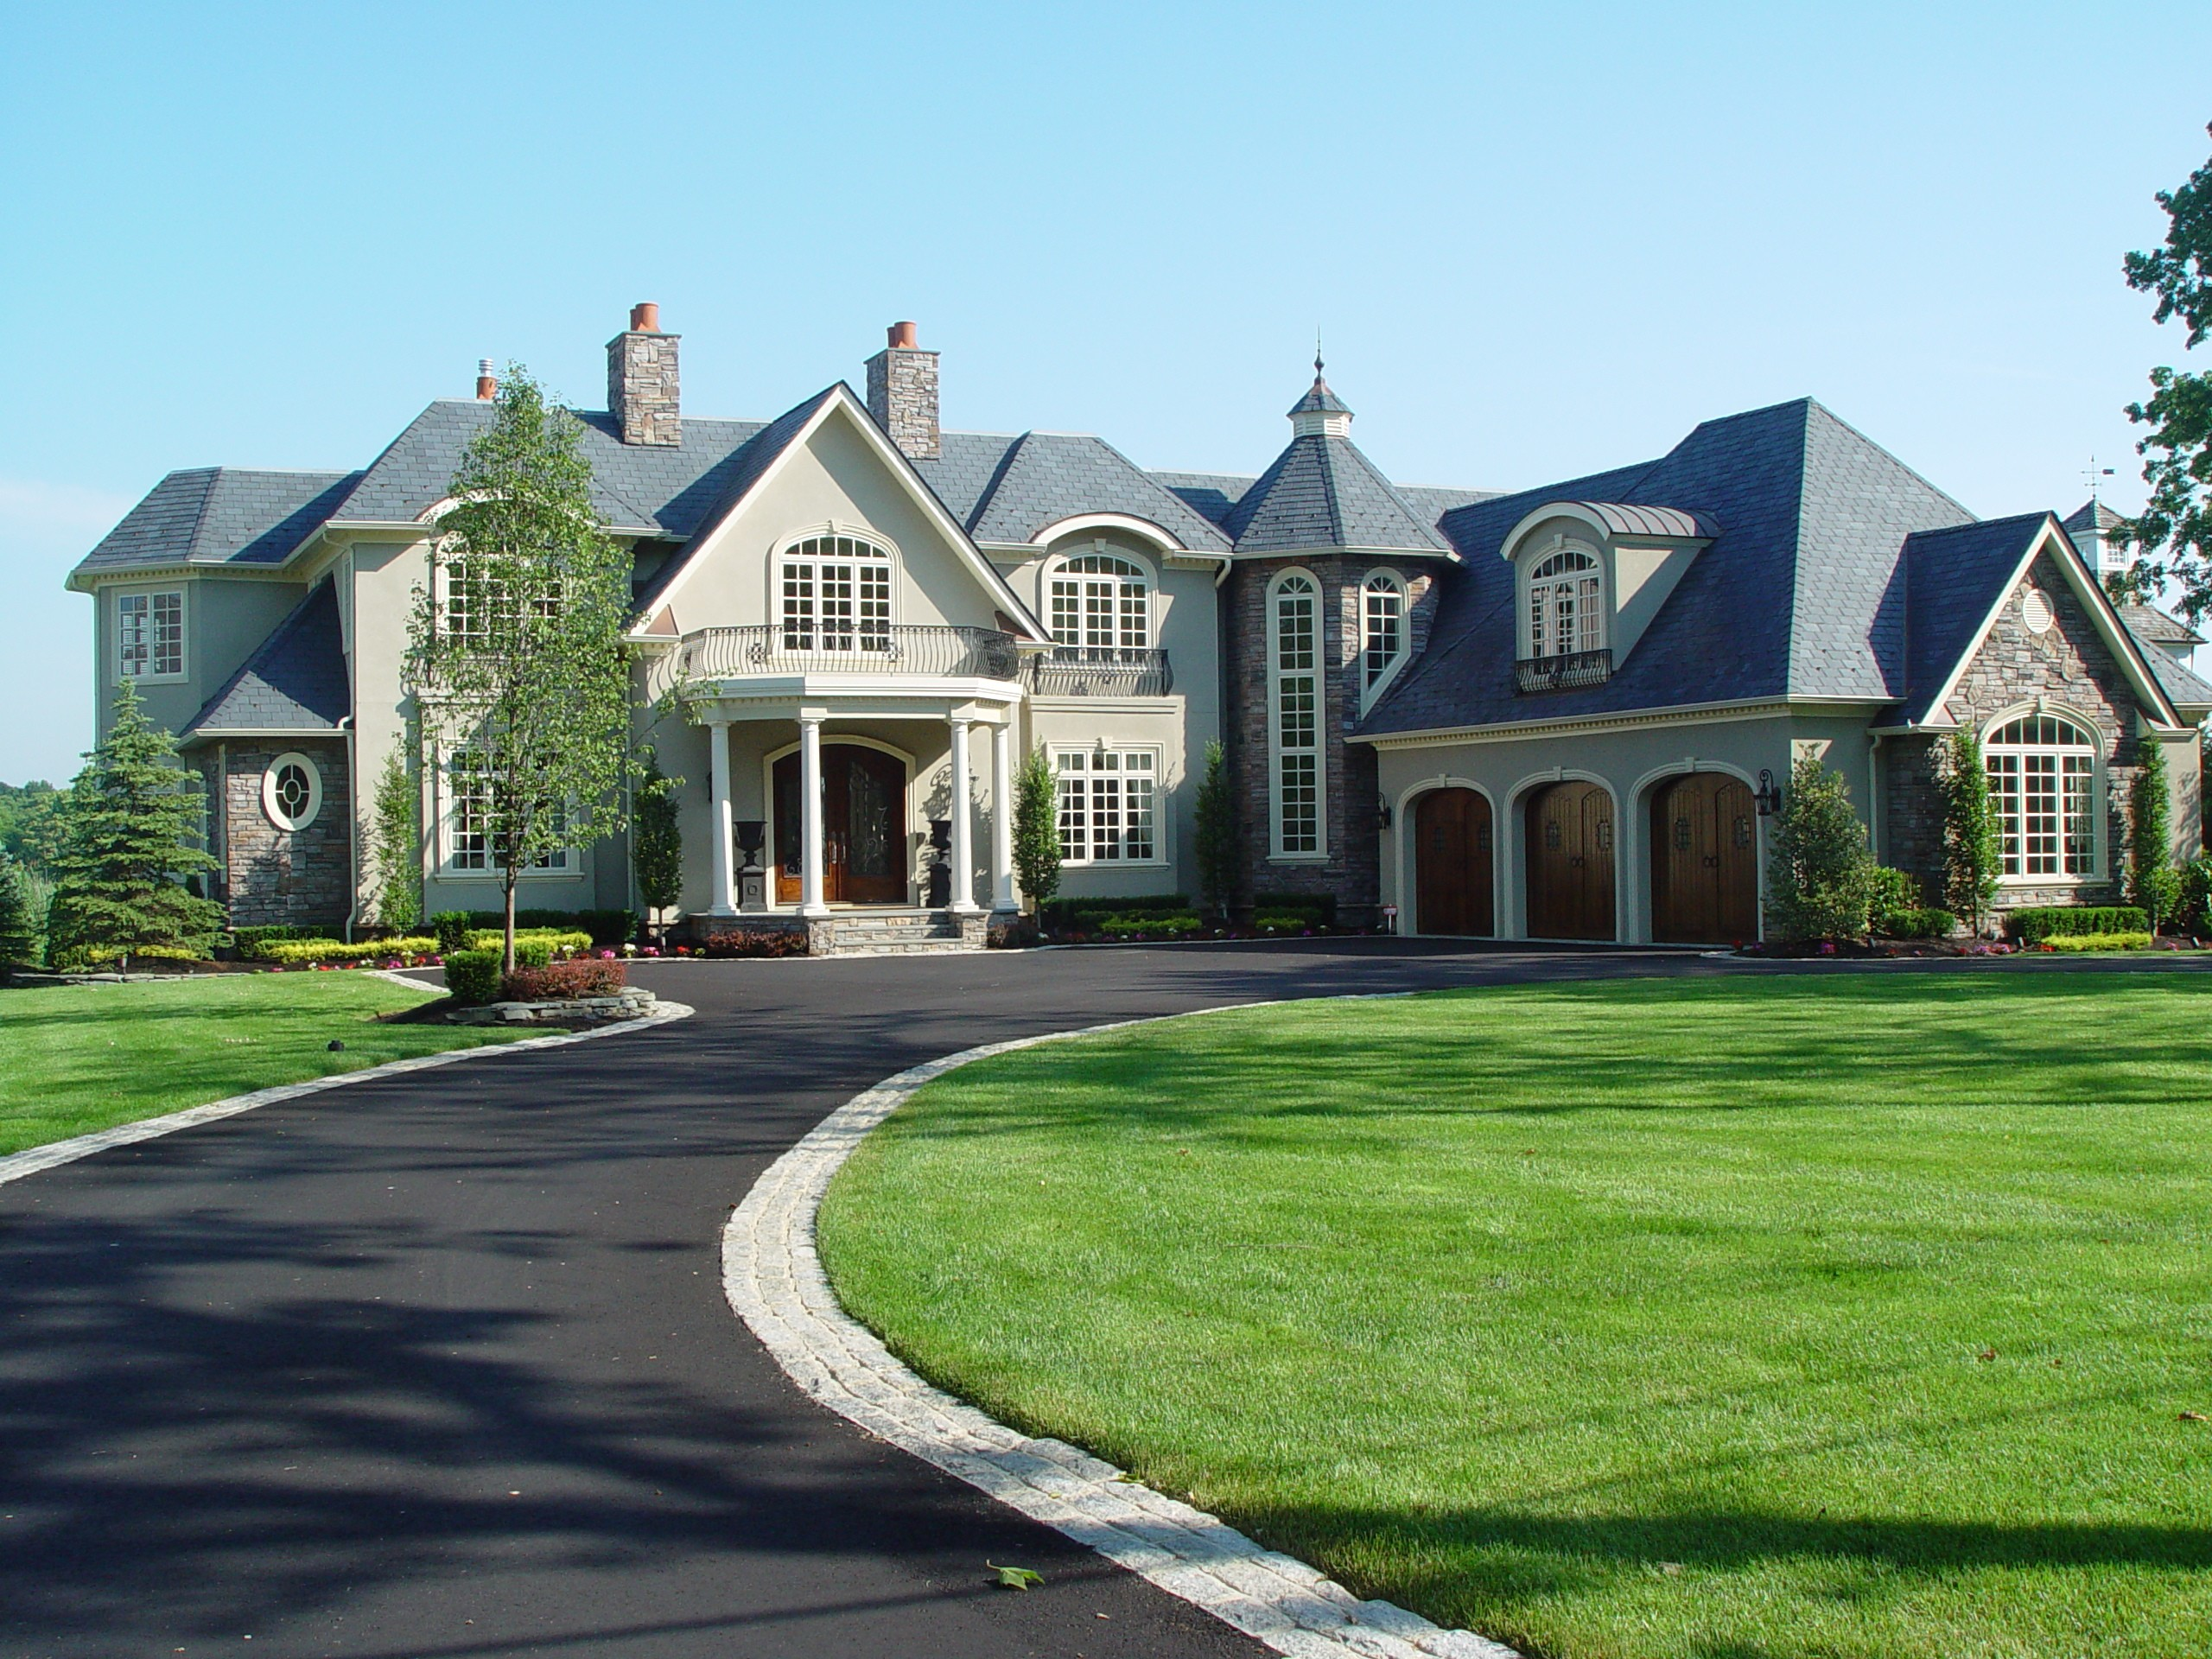 French Provincial Style Home Design Build Pros